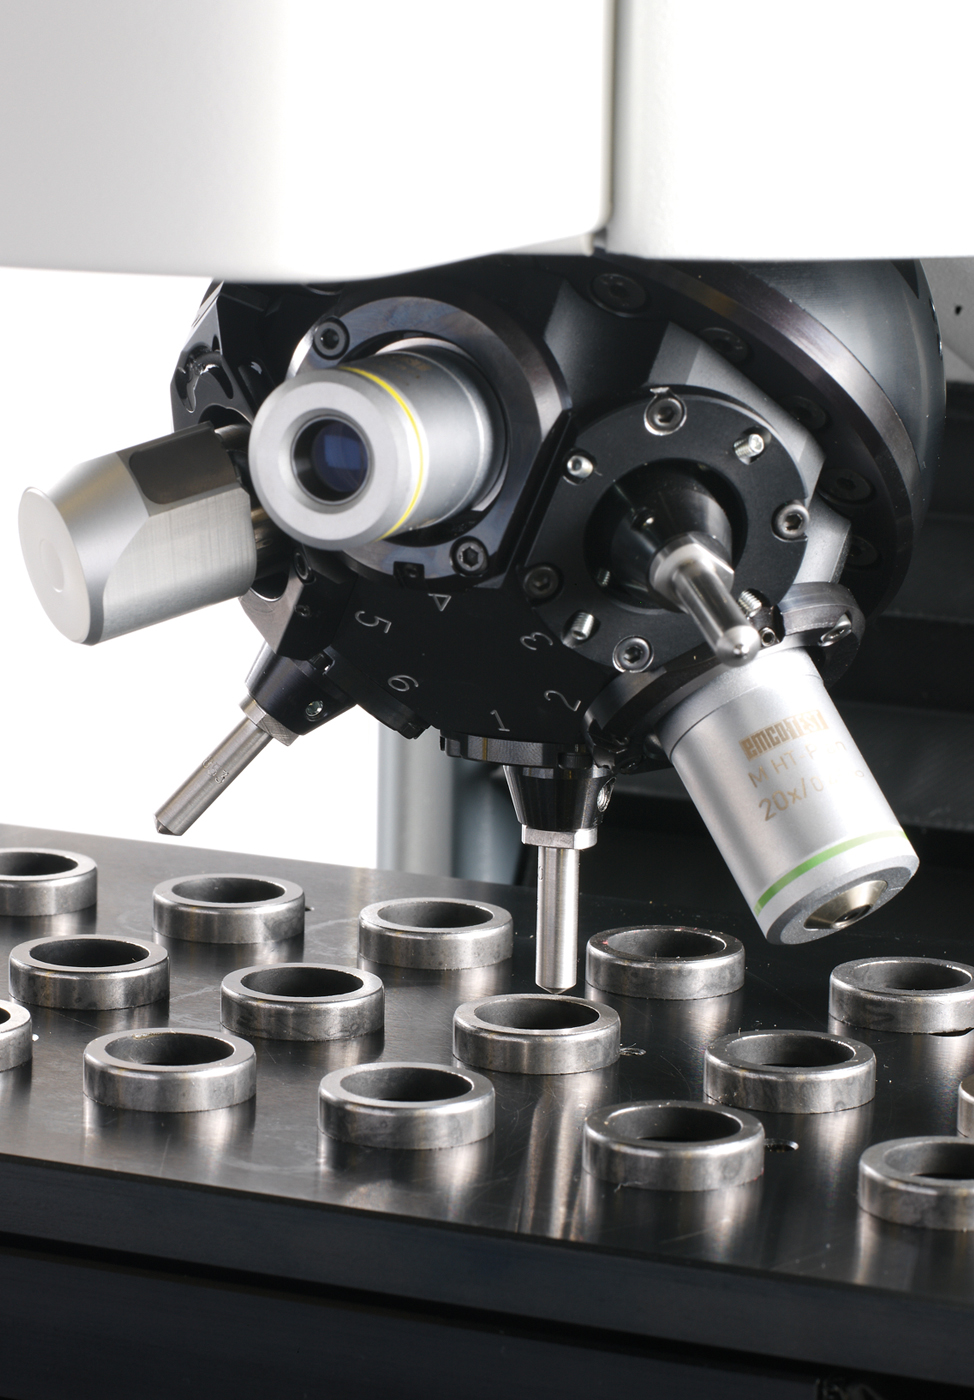 DuraVision Accuracy and repeatability